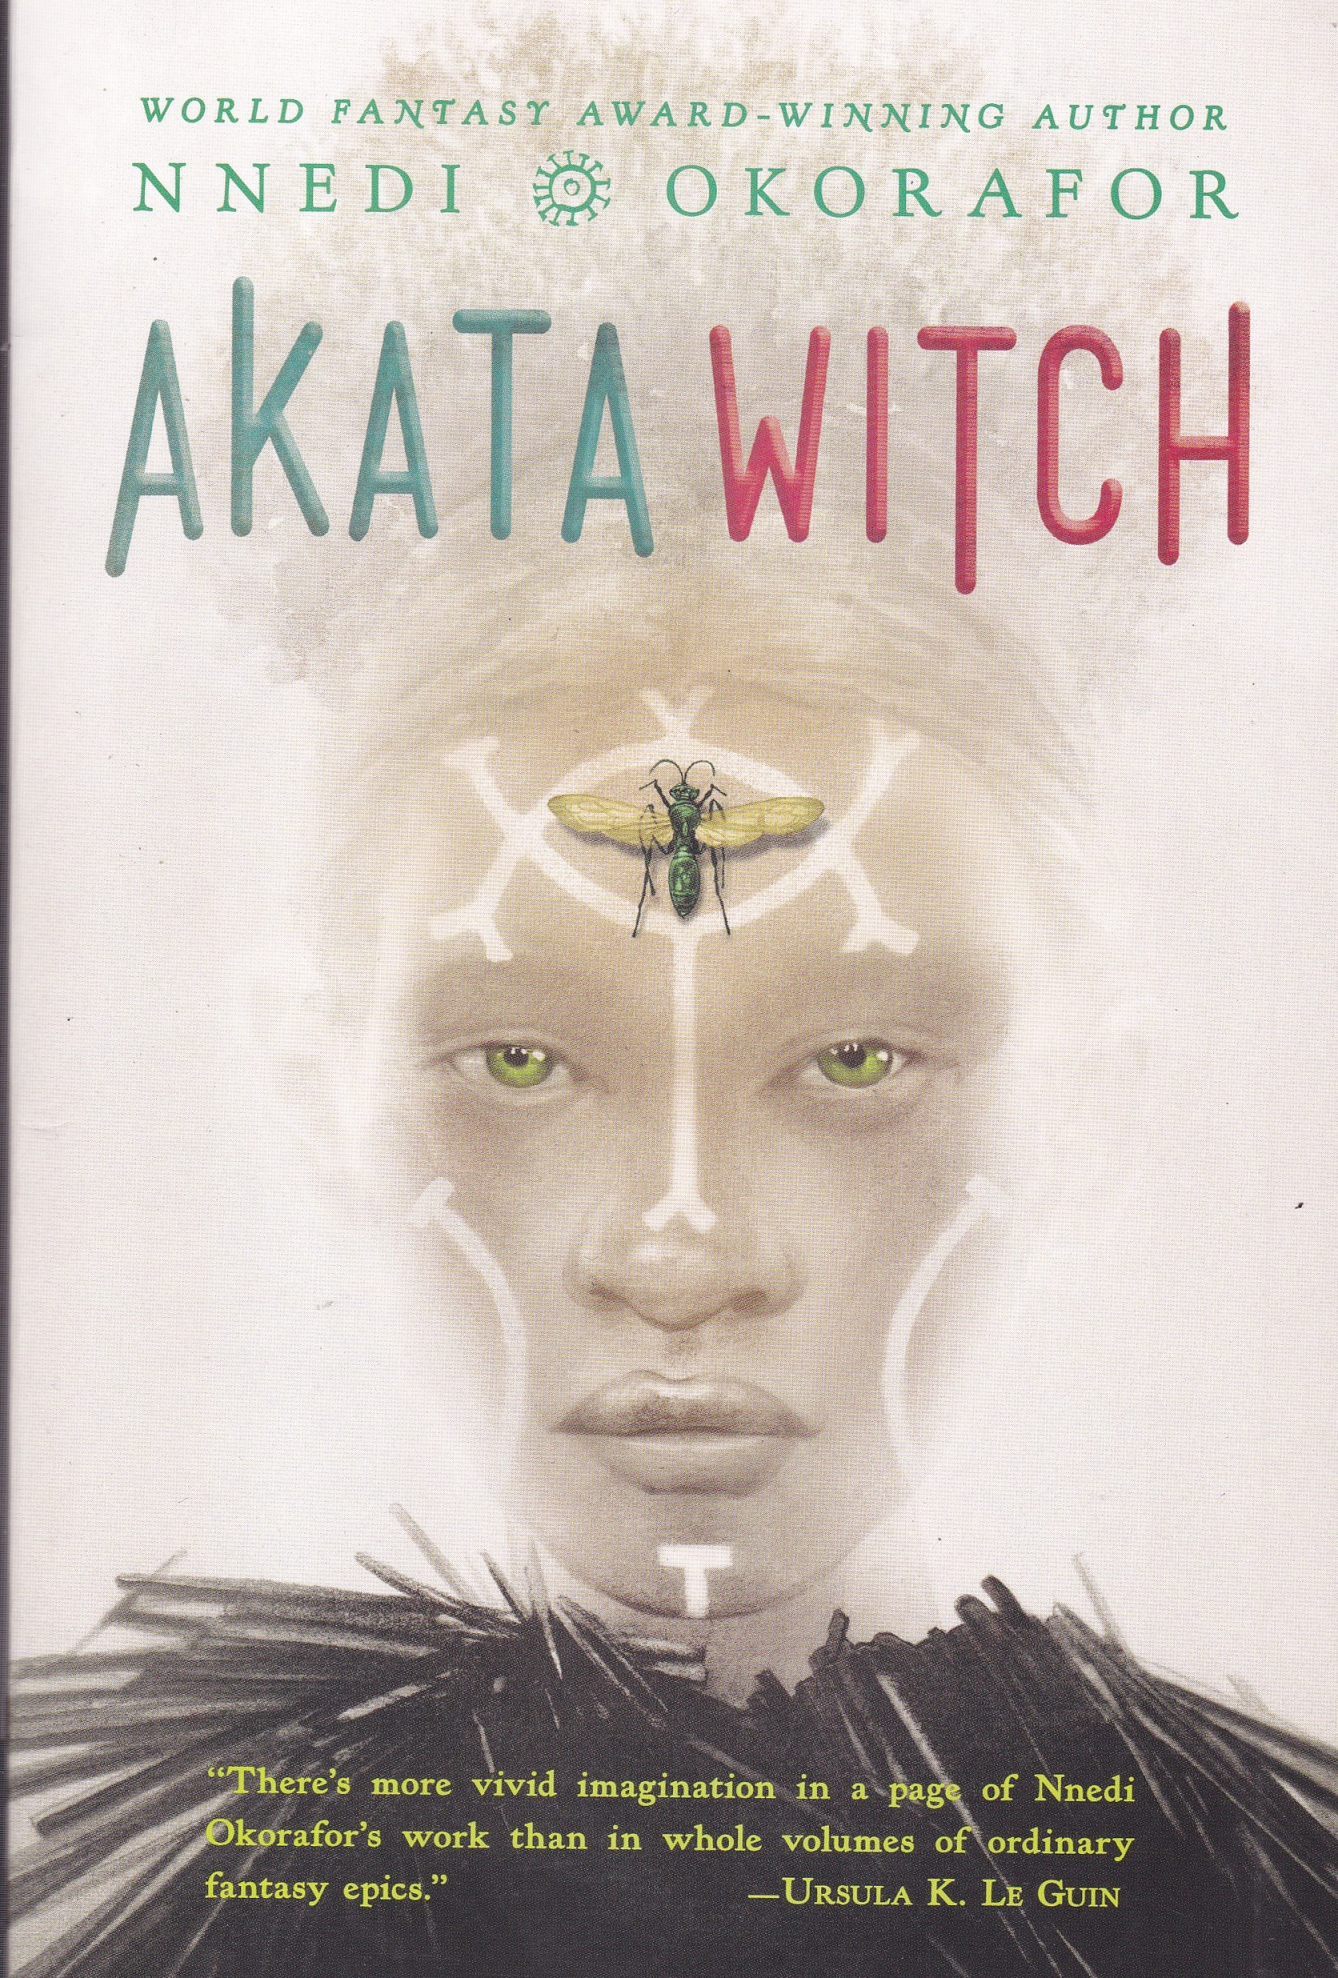 akata witch.jpg